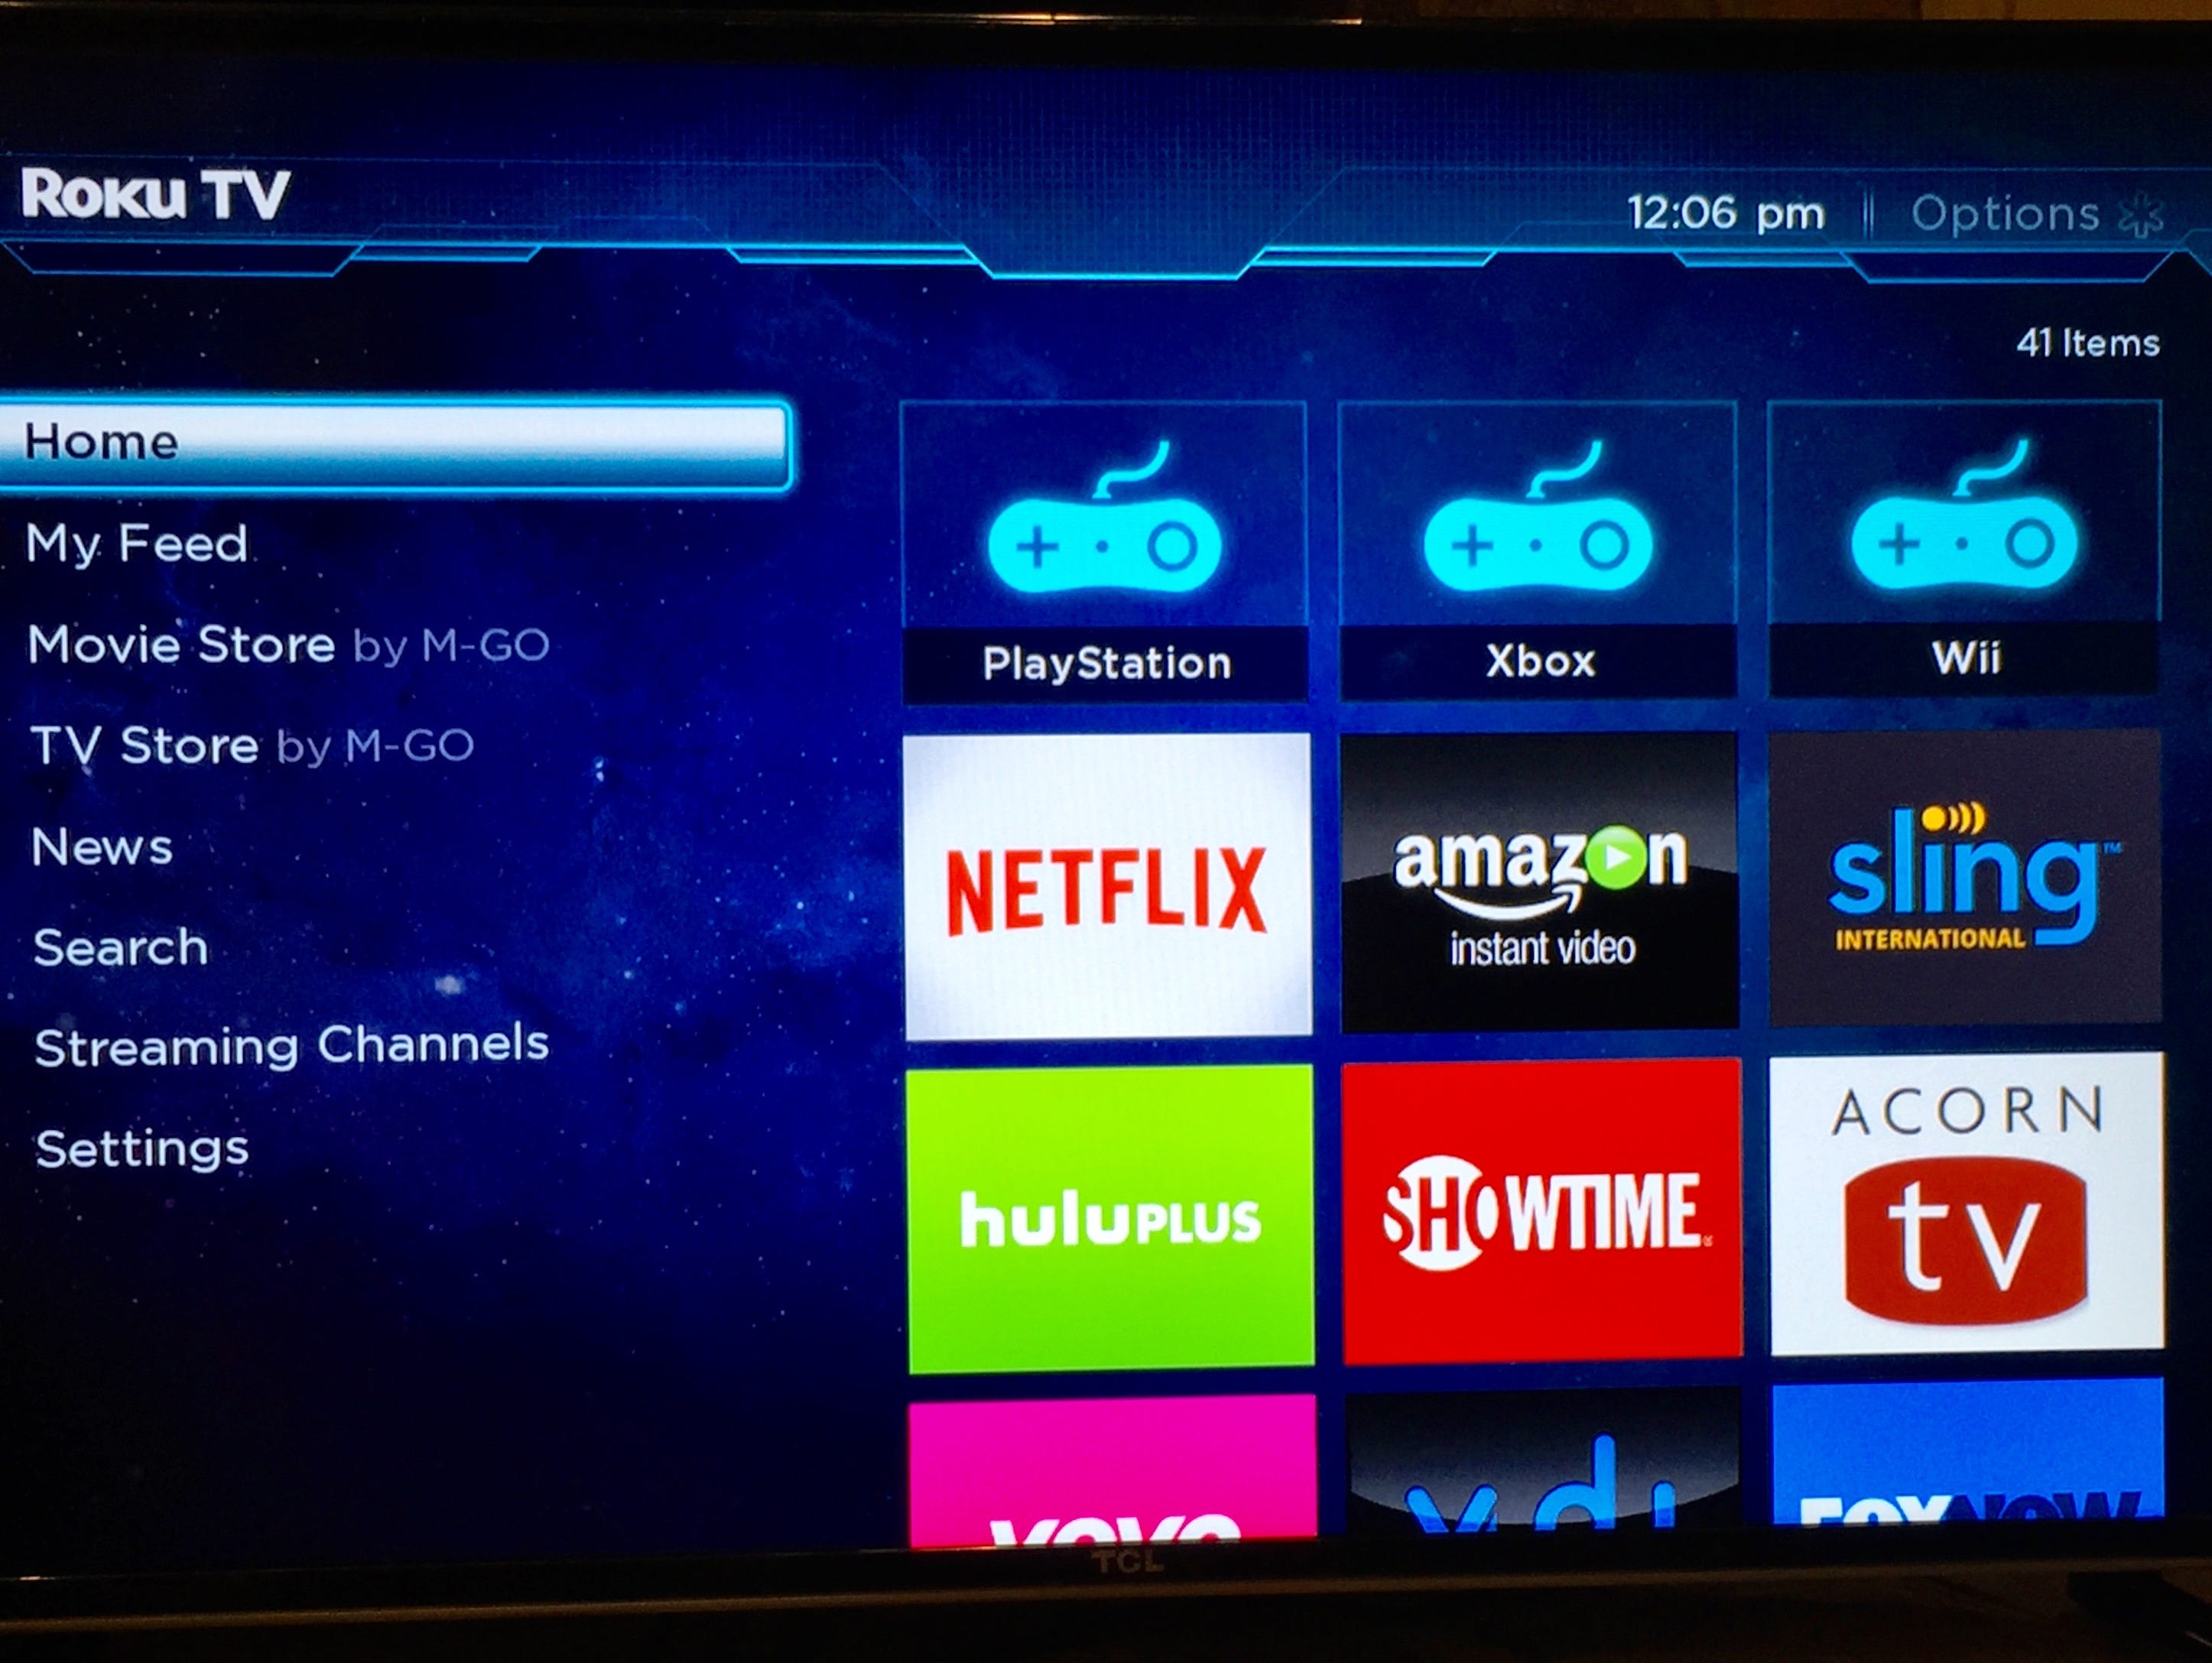 A photo of TCL's 40-inch Roku TV with menu displayed.